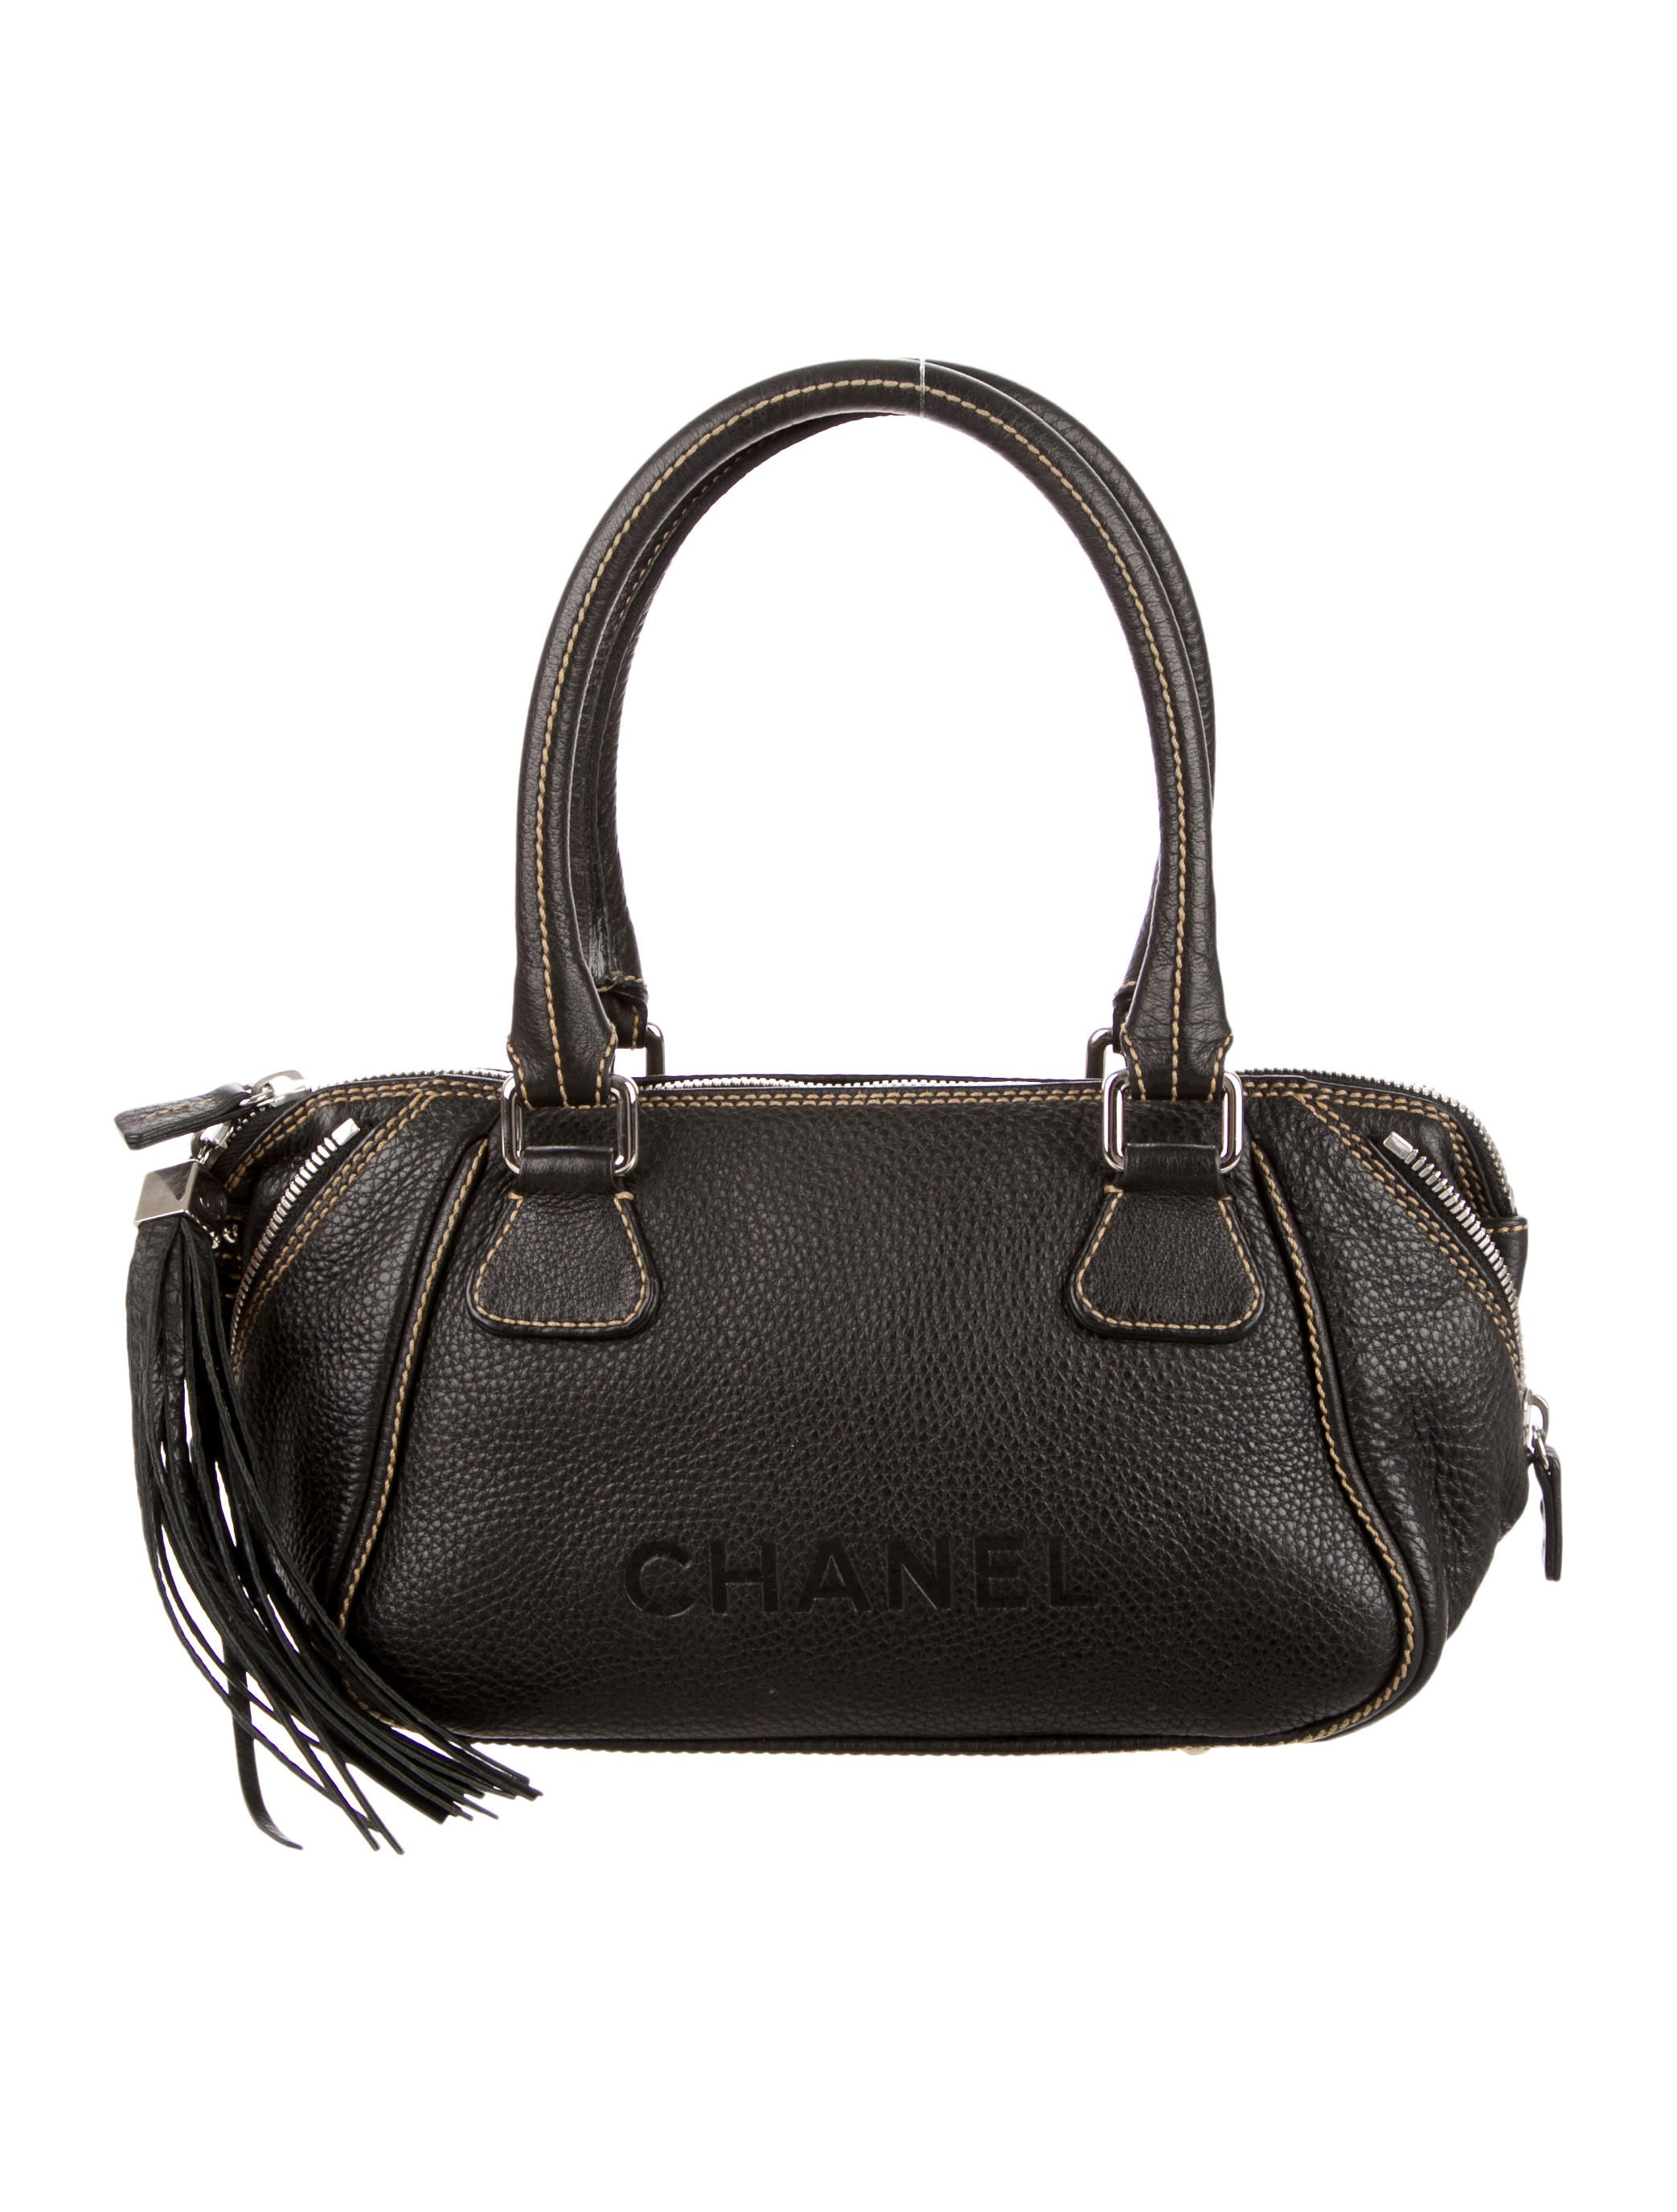 0824f3791f33 Chanel Small Lax Tassel Bag - Black leather Chanel Small Lax bag with silver -tone